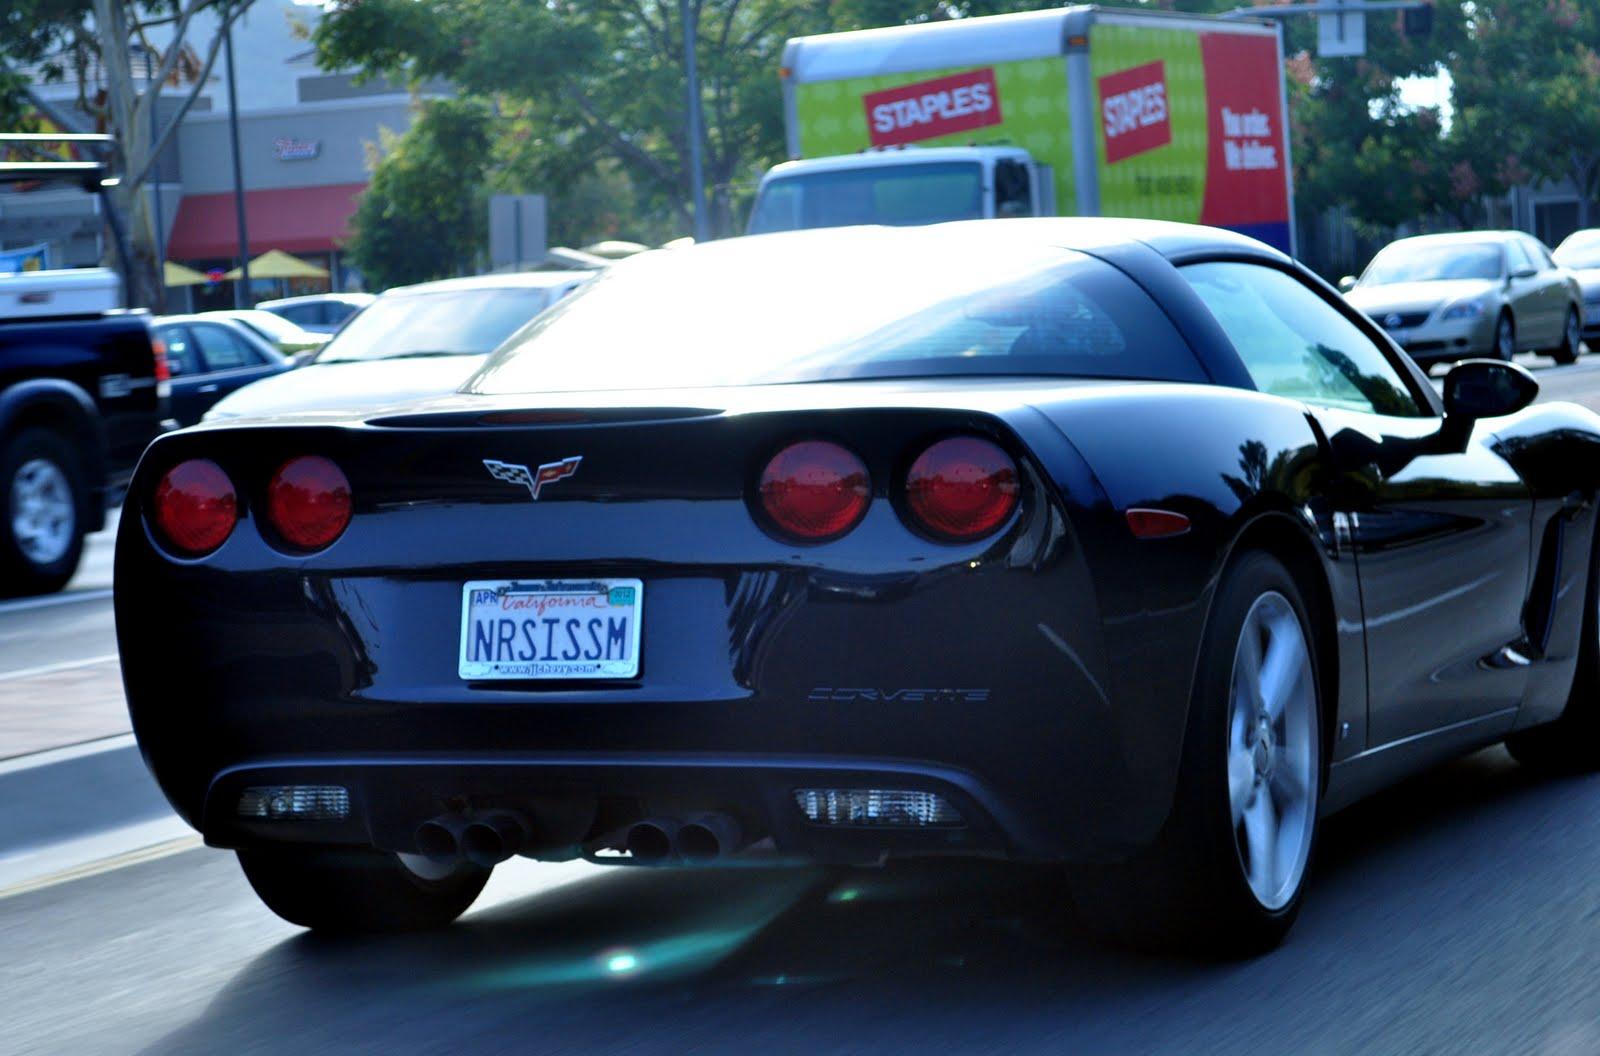 Charming Is It Ironic That A Corvette Has This License Plate?